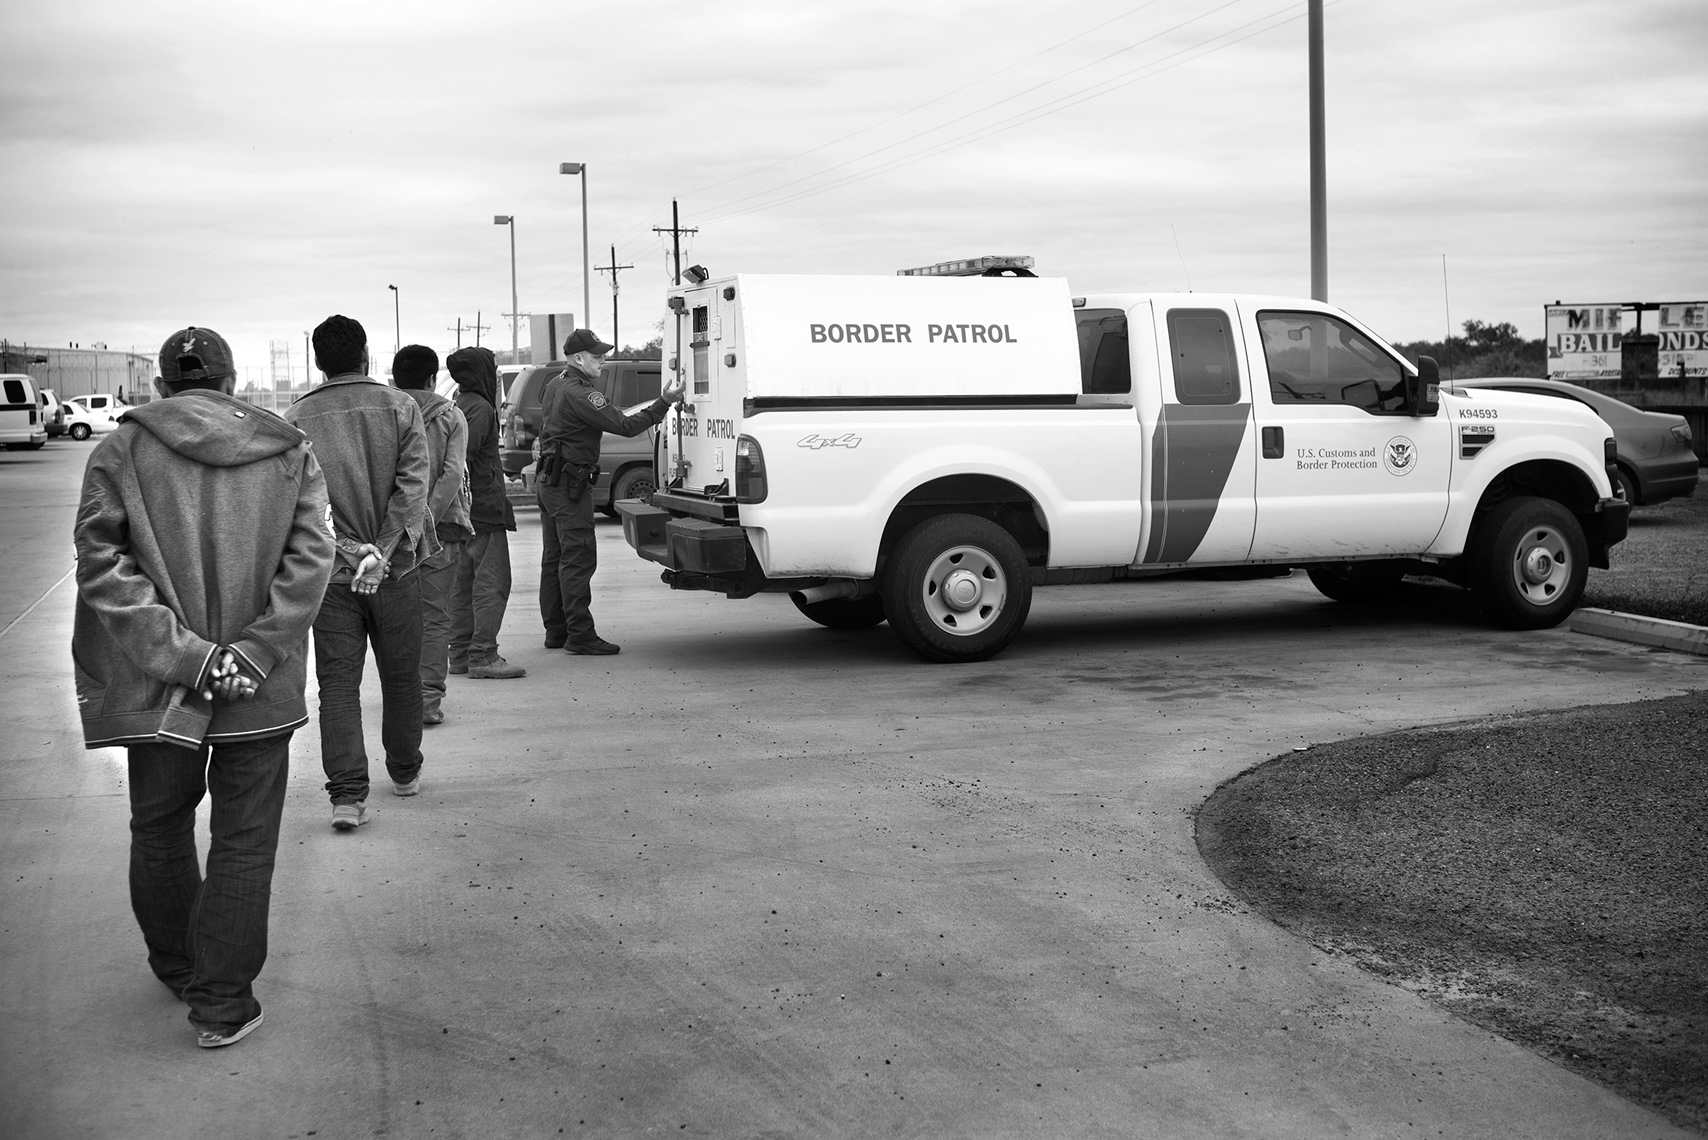 thibodeaux_brandon_immigration_south_texas_00018